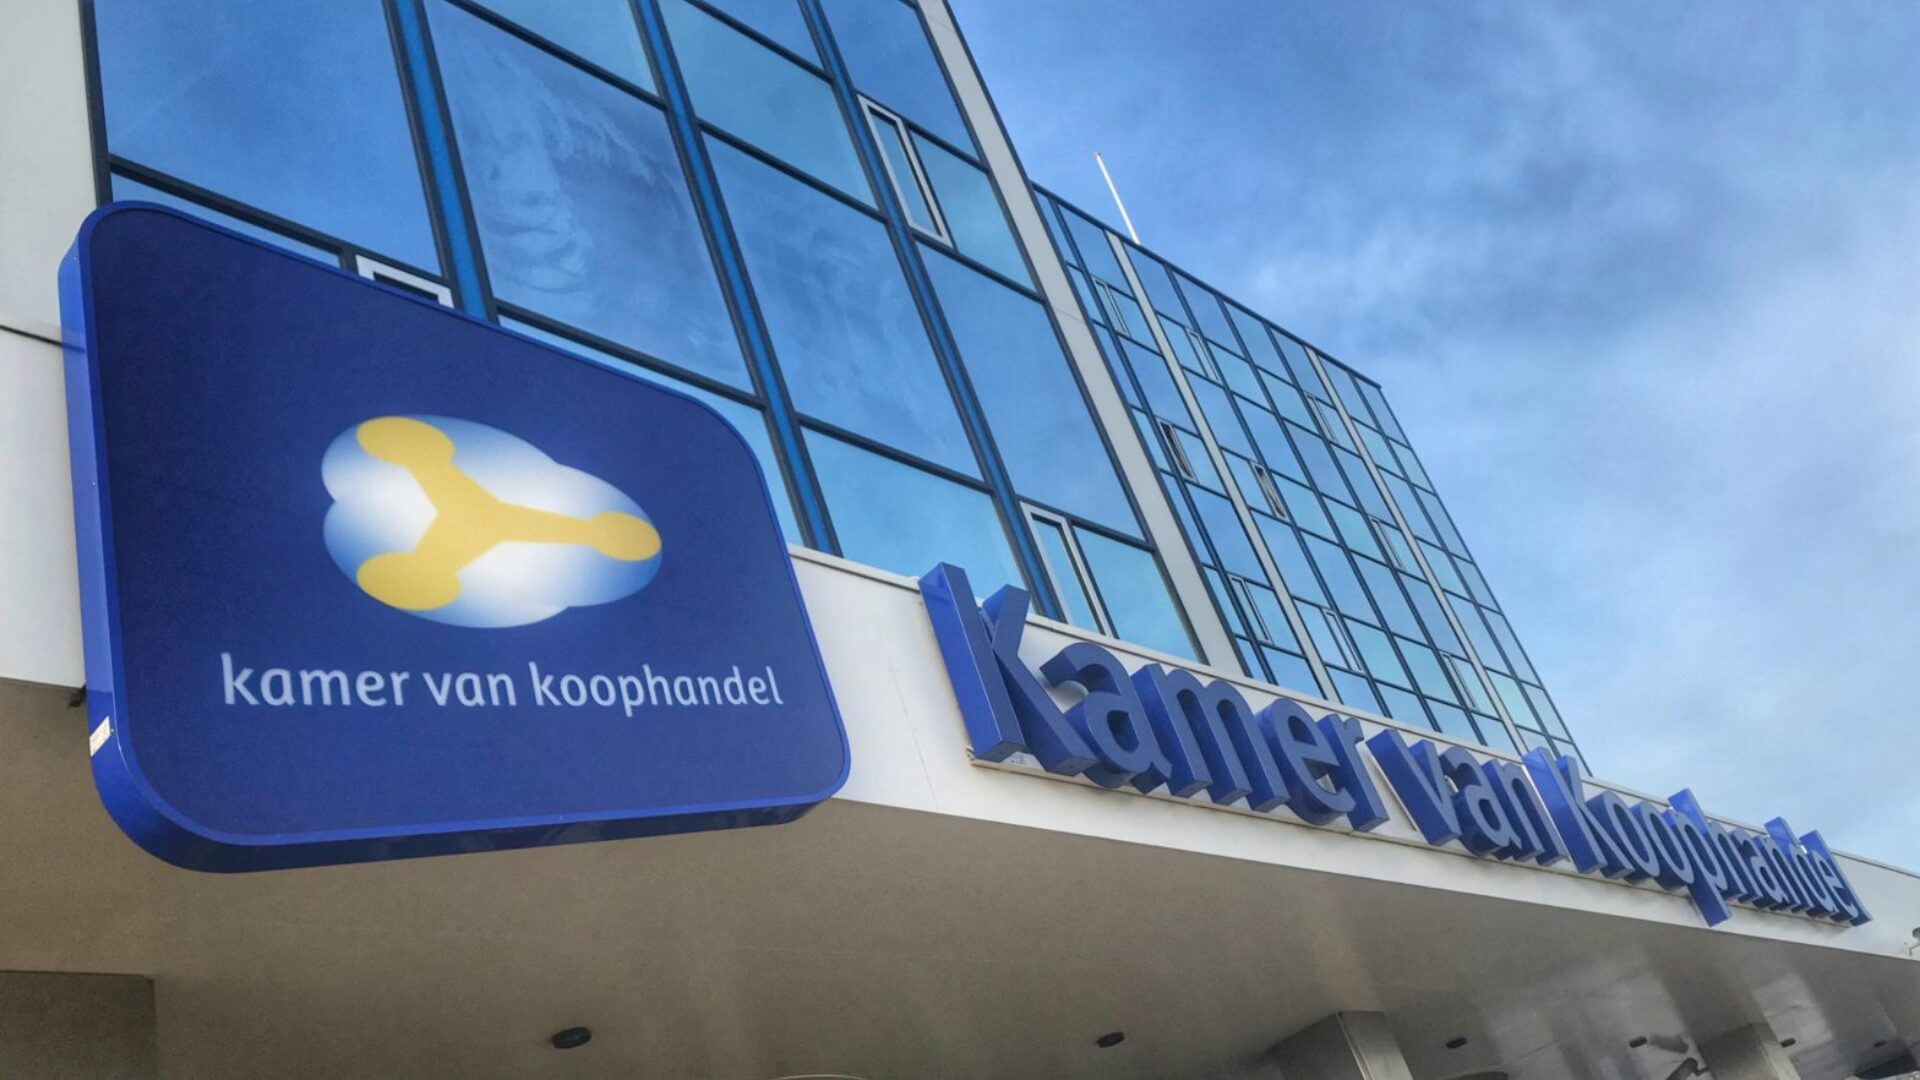 KVK: starting a business in the Netherlands